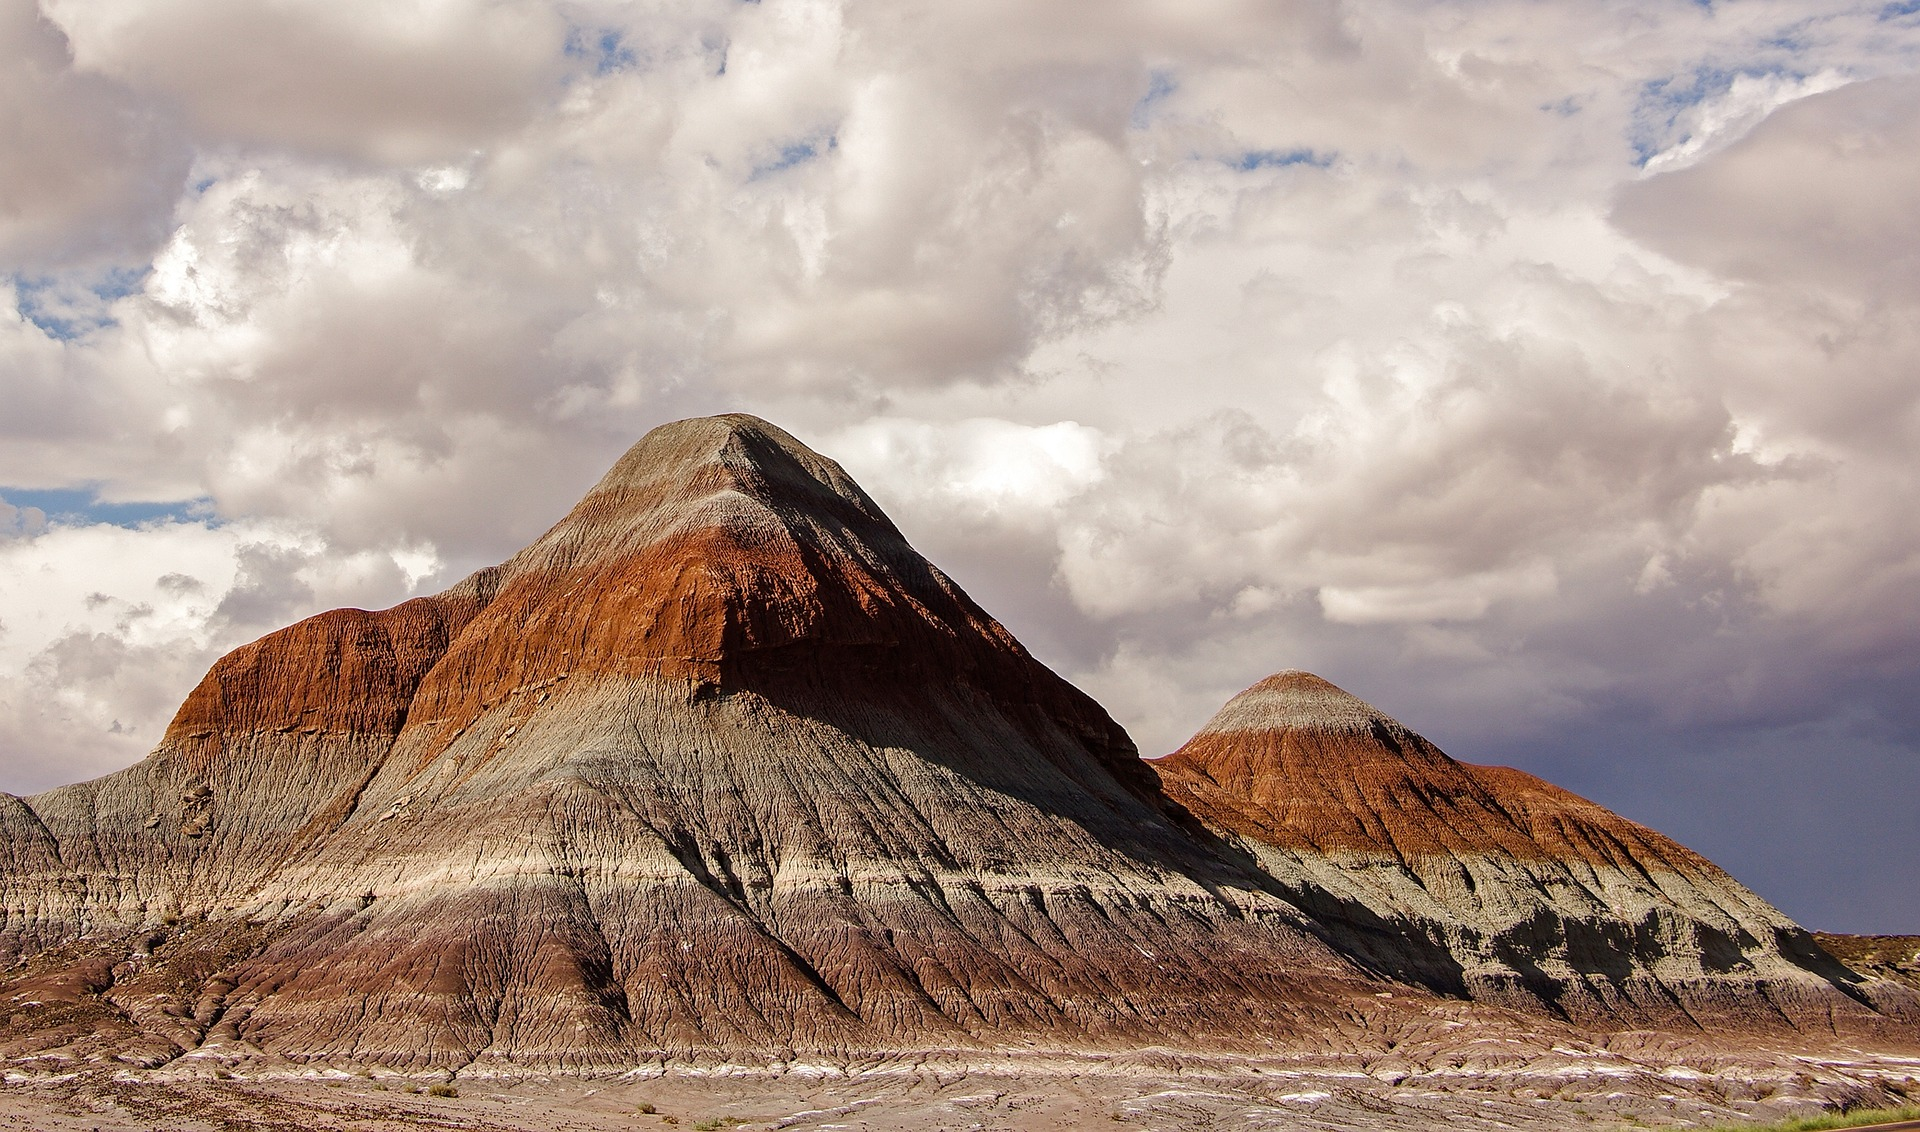 Petrified Forest National Park, Arizona, USA